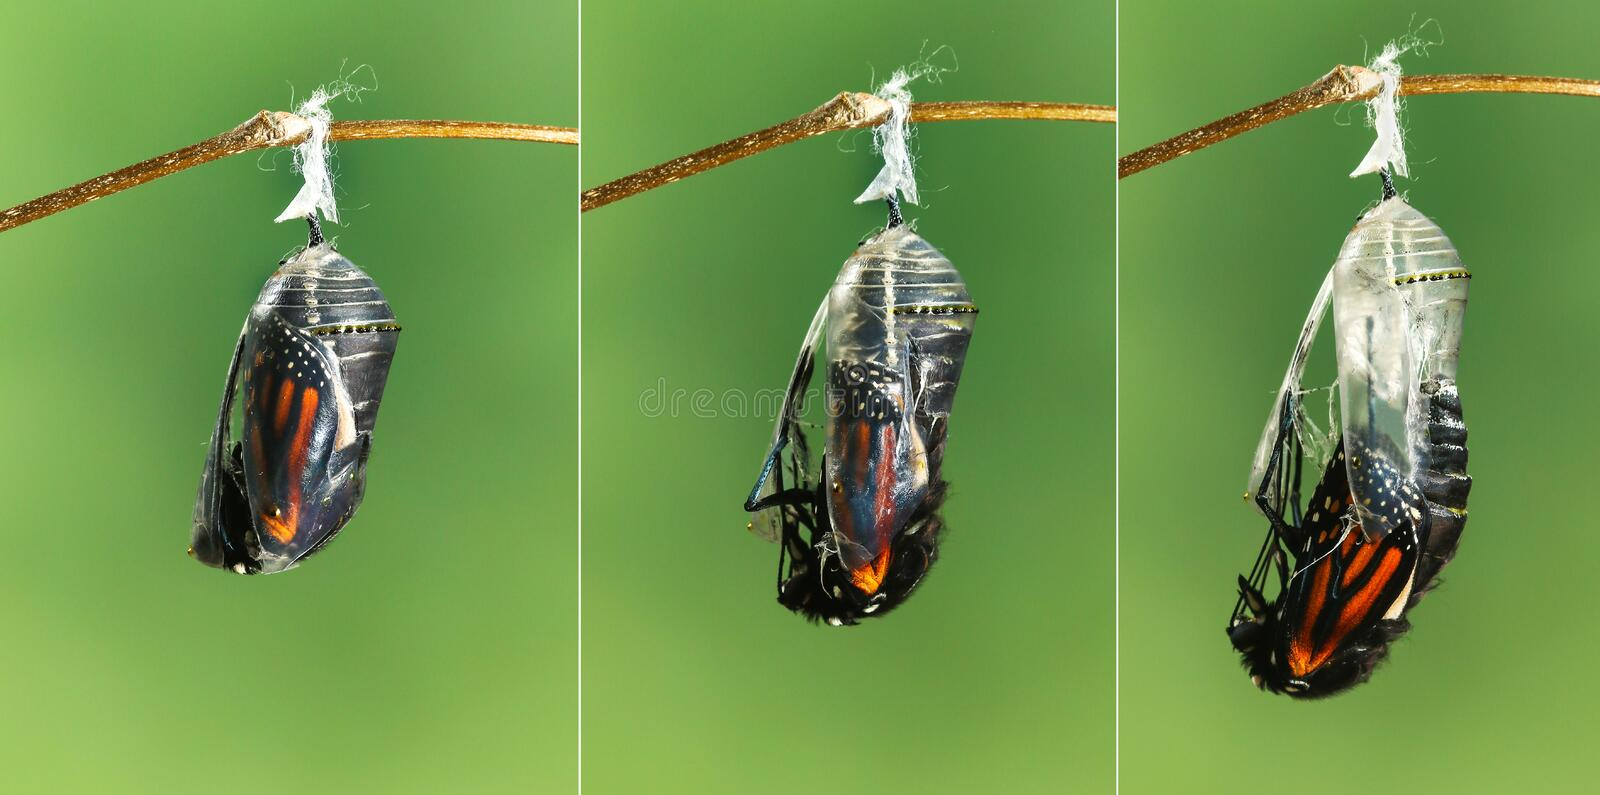 Monarch butterfly emerging from chrysalis to butterfly stock photos